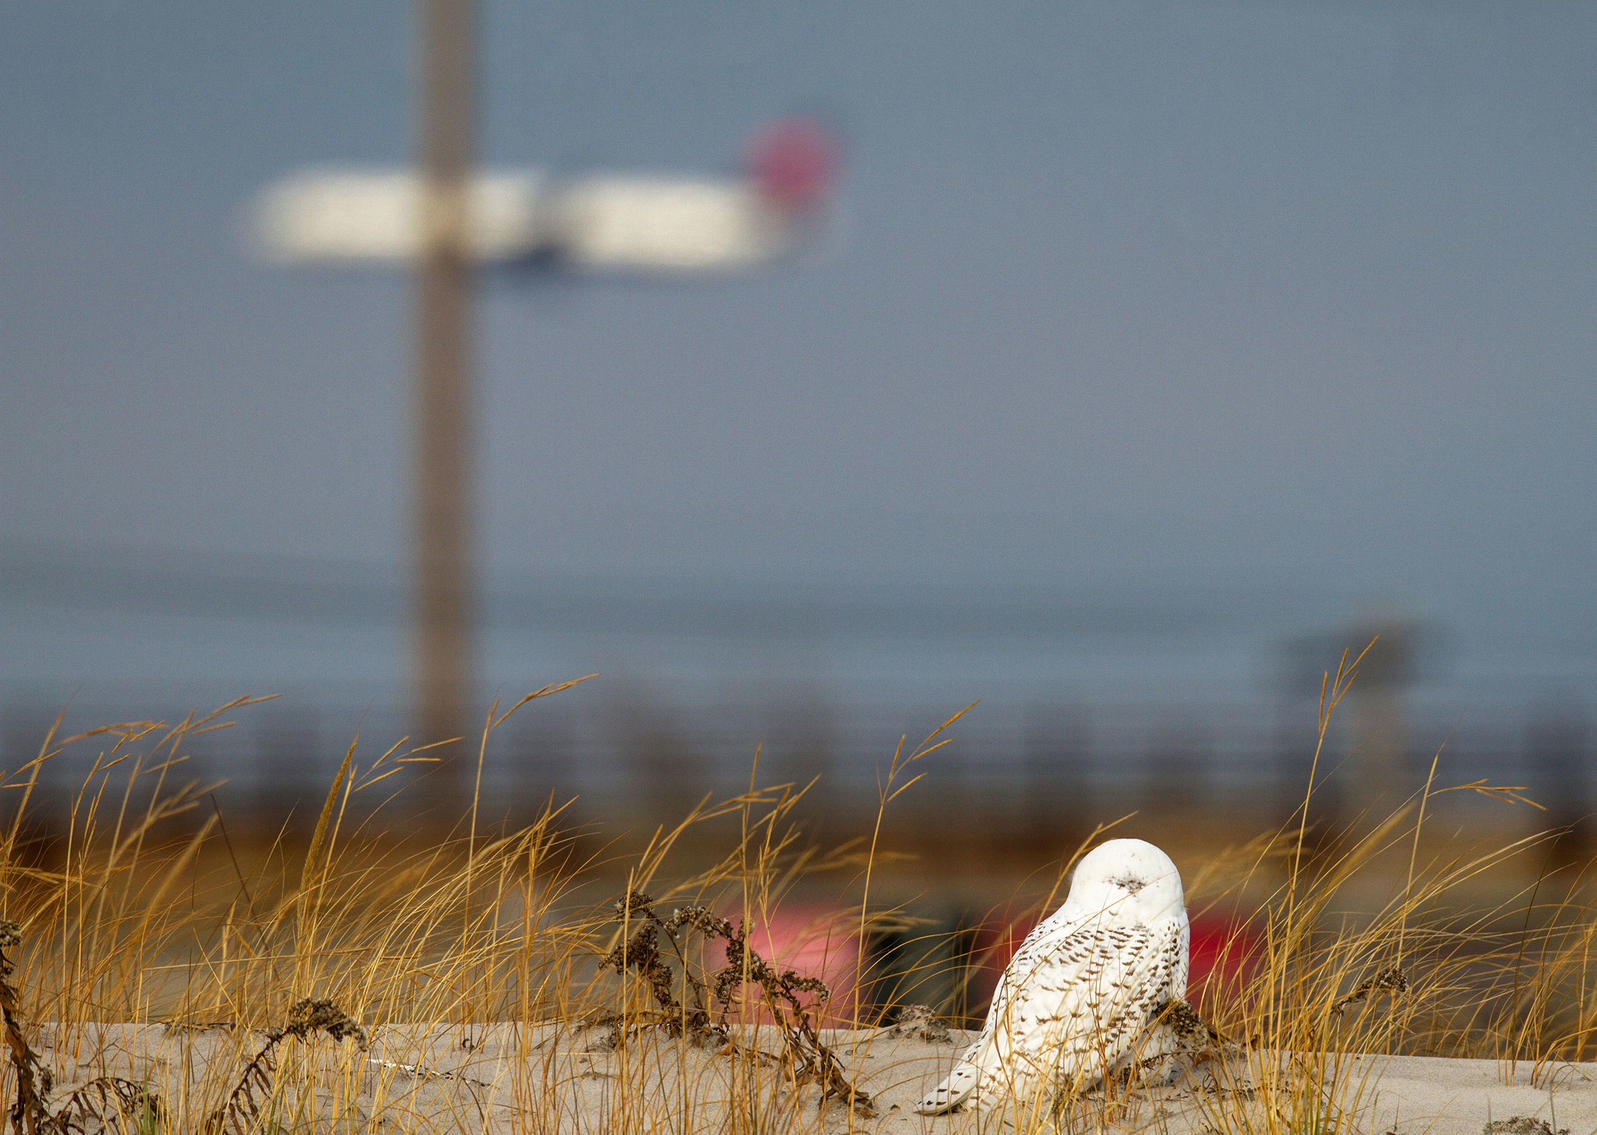 A Snowy Owl on an approach path at John F. Kennedy Airport. The birds often confuse tarmacs with the tundra. Francois Portmann